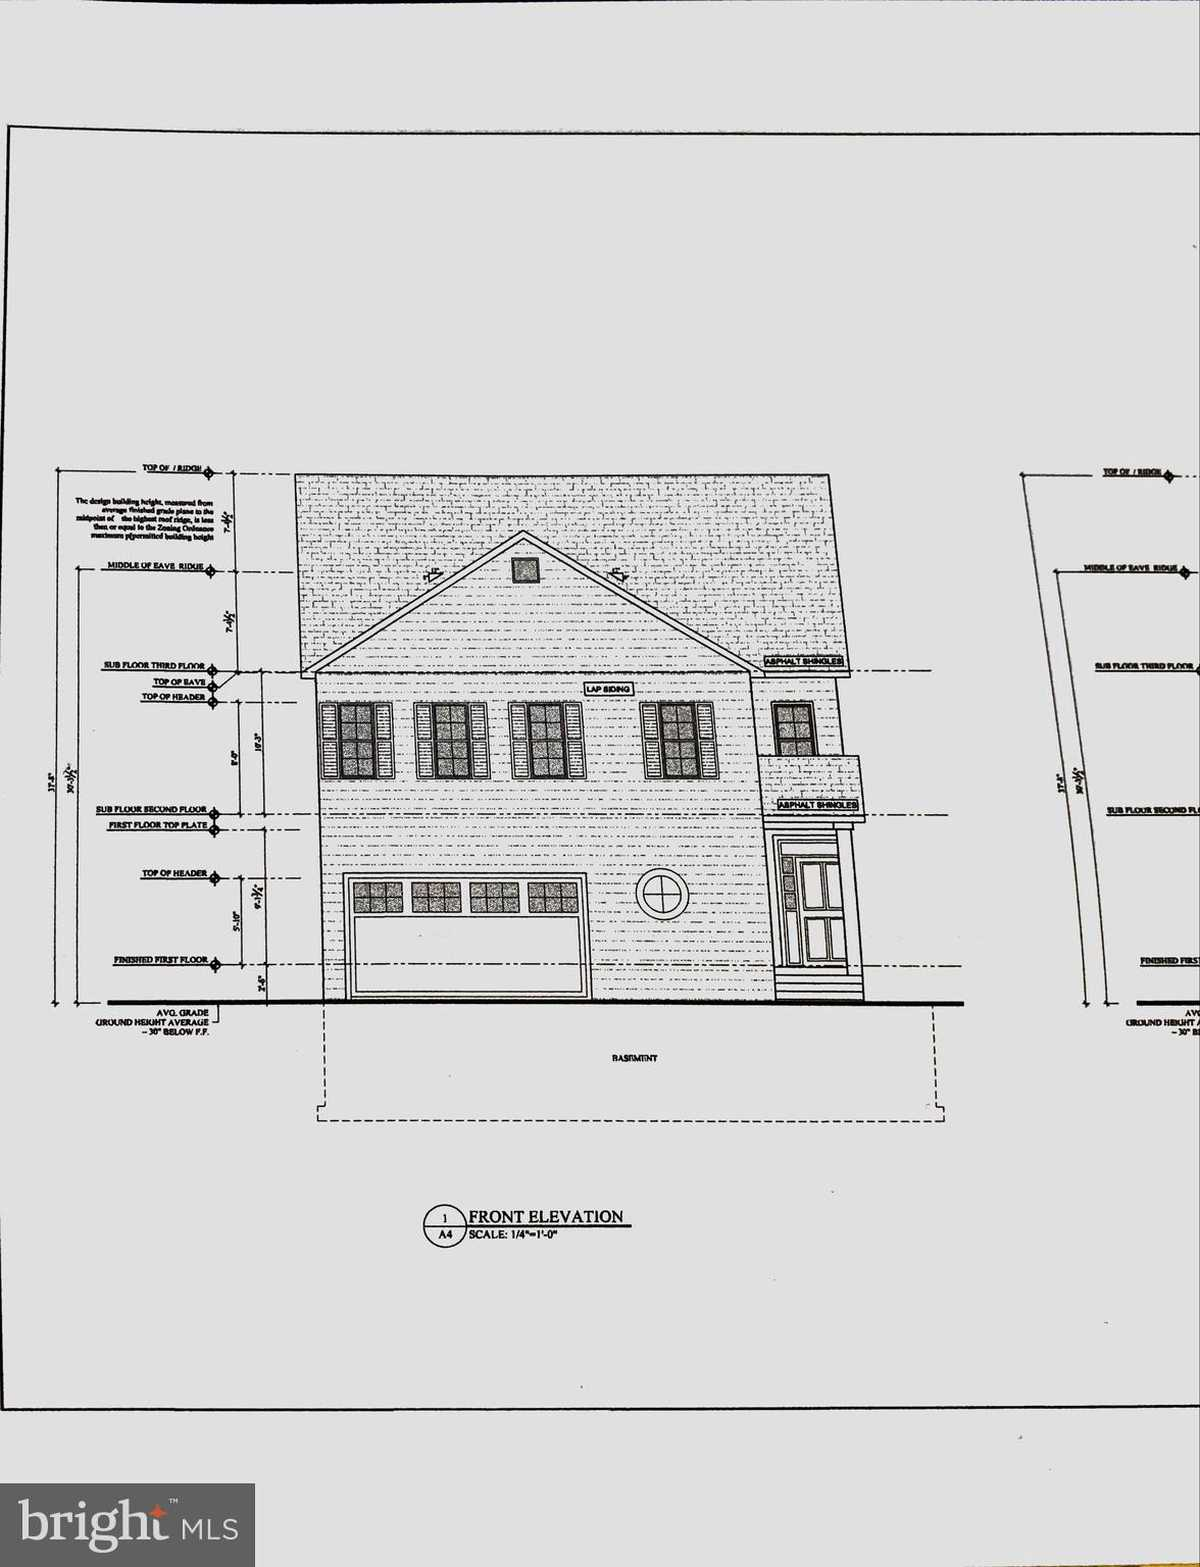 $1,099,000 - 5Br/5Ba -  for Sale in Rolling Valley, Burke